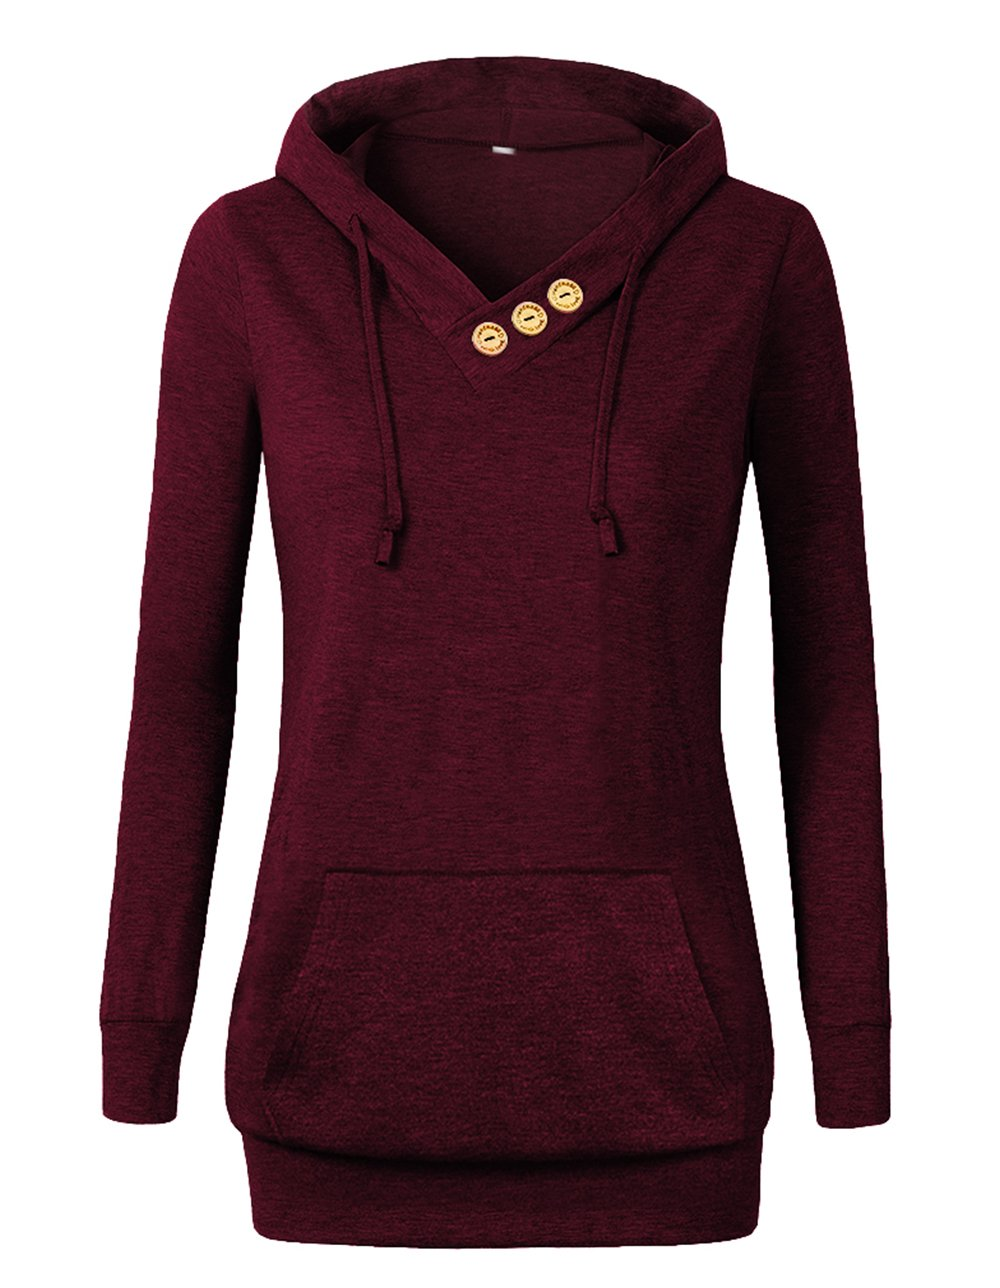 VOIANLIMO Women's Sweatshirts Long Sleeve Button V-Neck Pockets Pullover Hoodies Burgundy XL